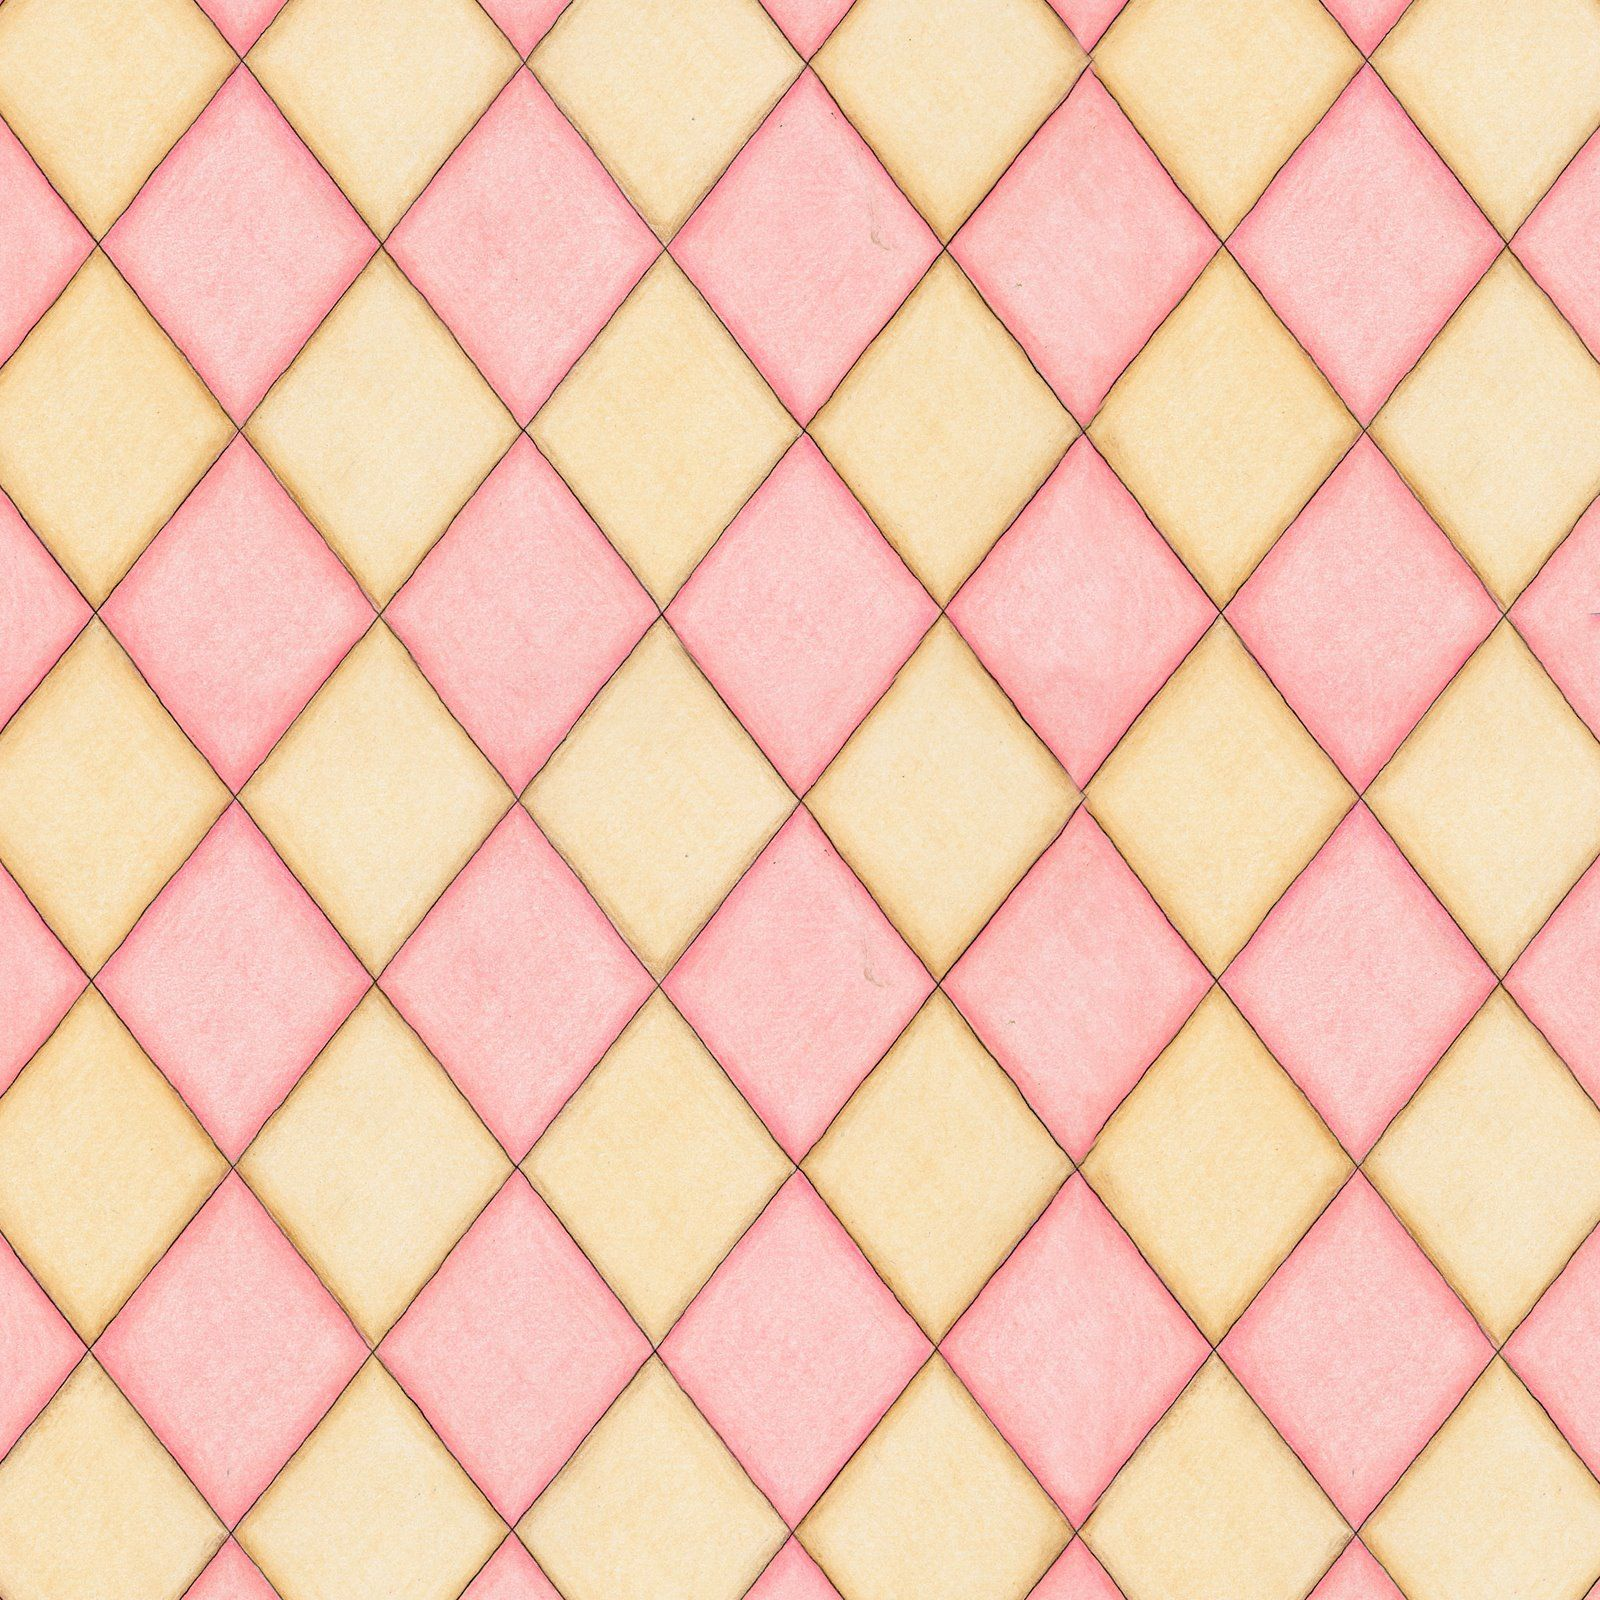 Pink Diamond Wallpaper: Pretty PATternS To Play With